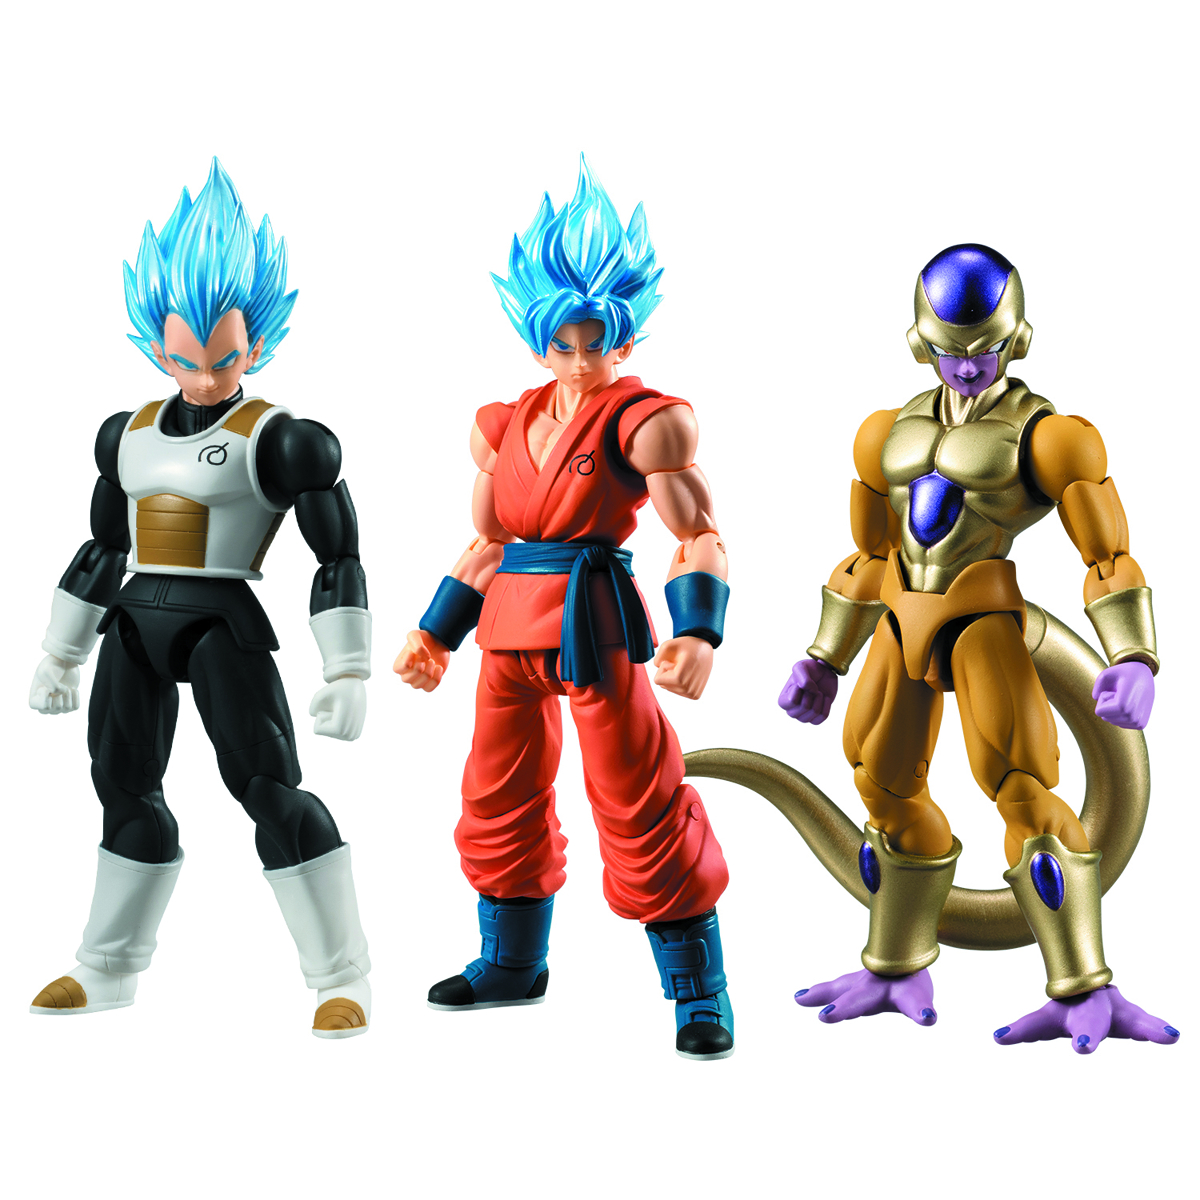 DBZ SHODO 2 DRAGON BALL SUPER TRAD FIG 6PC ASST